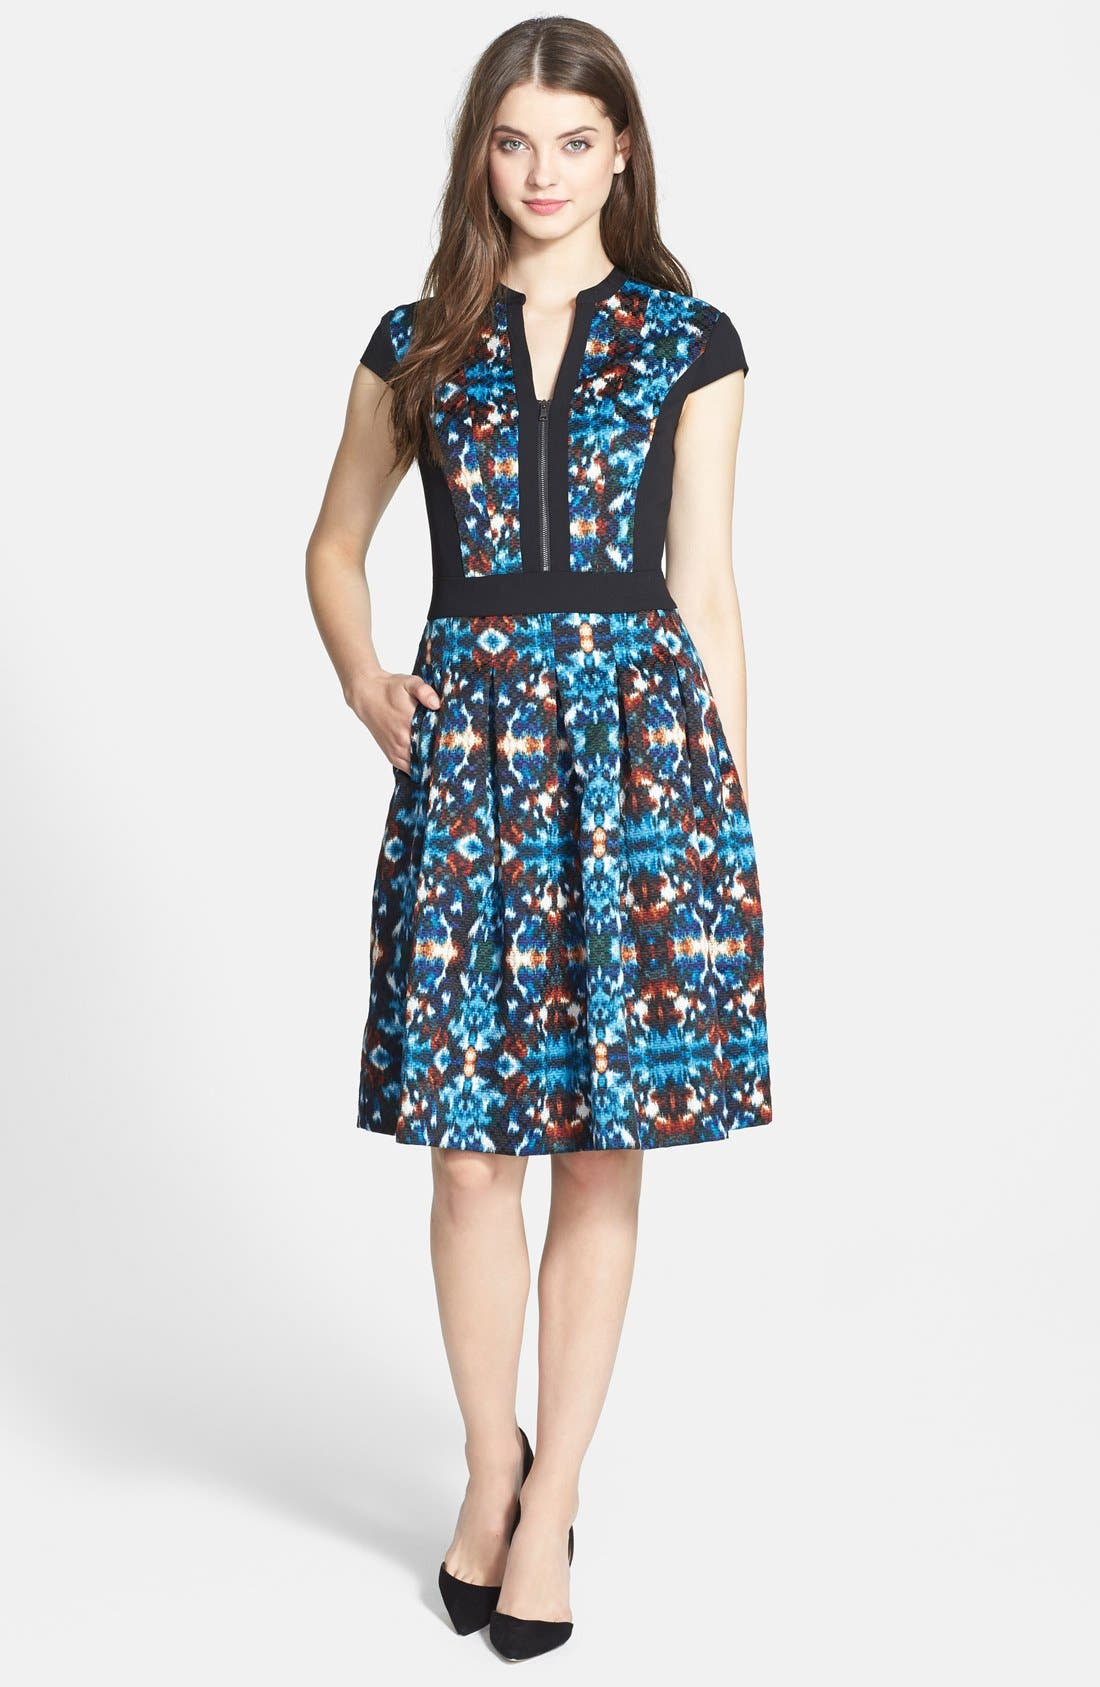 Alternate Image 1 Selected - Adrianna Papell Ikat Jacquard Fit & Flare Dress